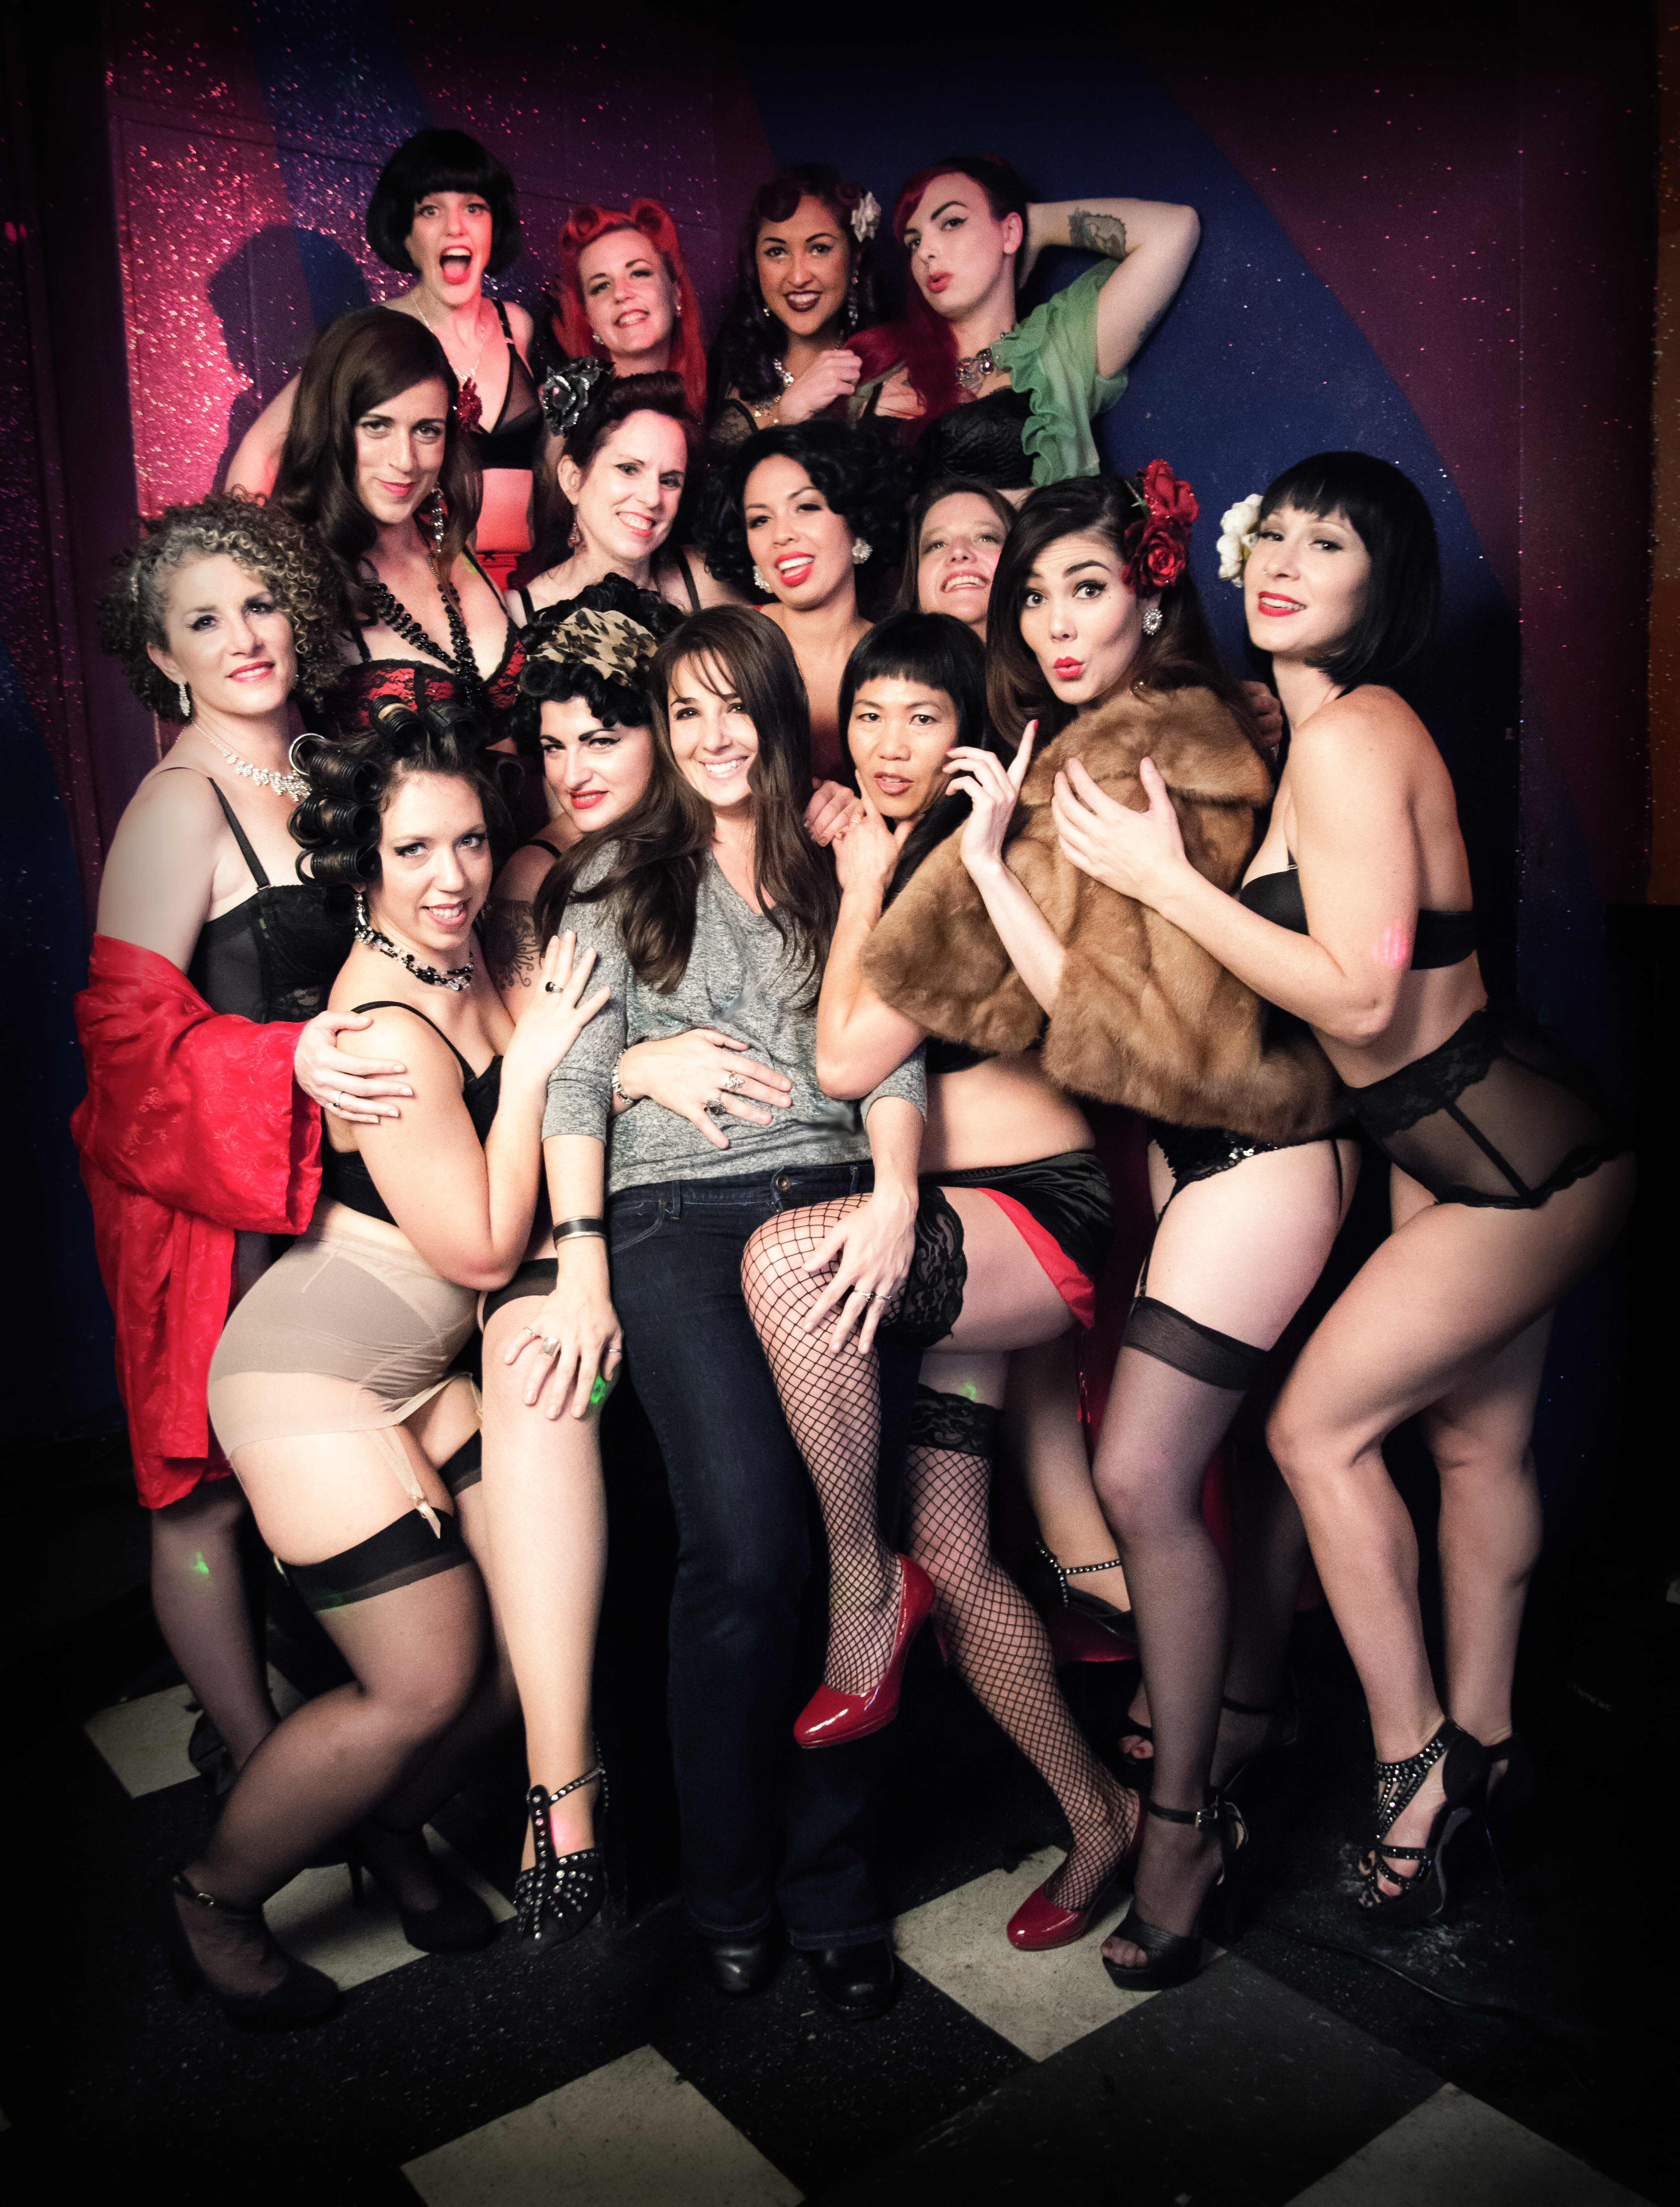 Burlesque Performers with Photographer A